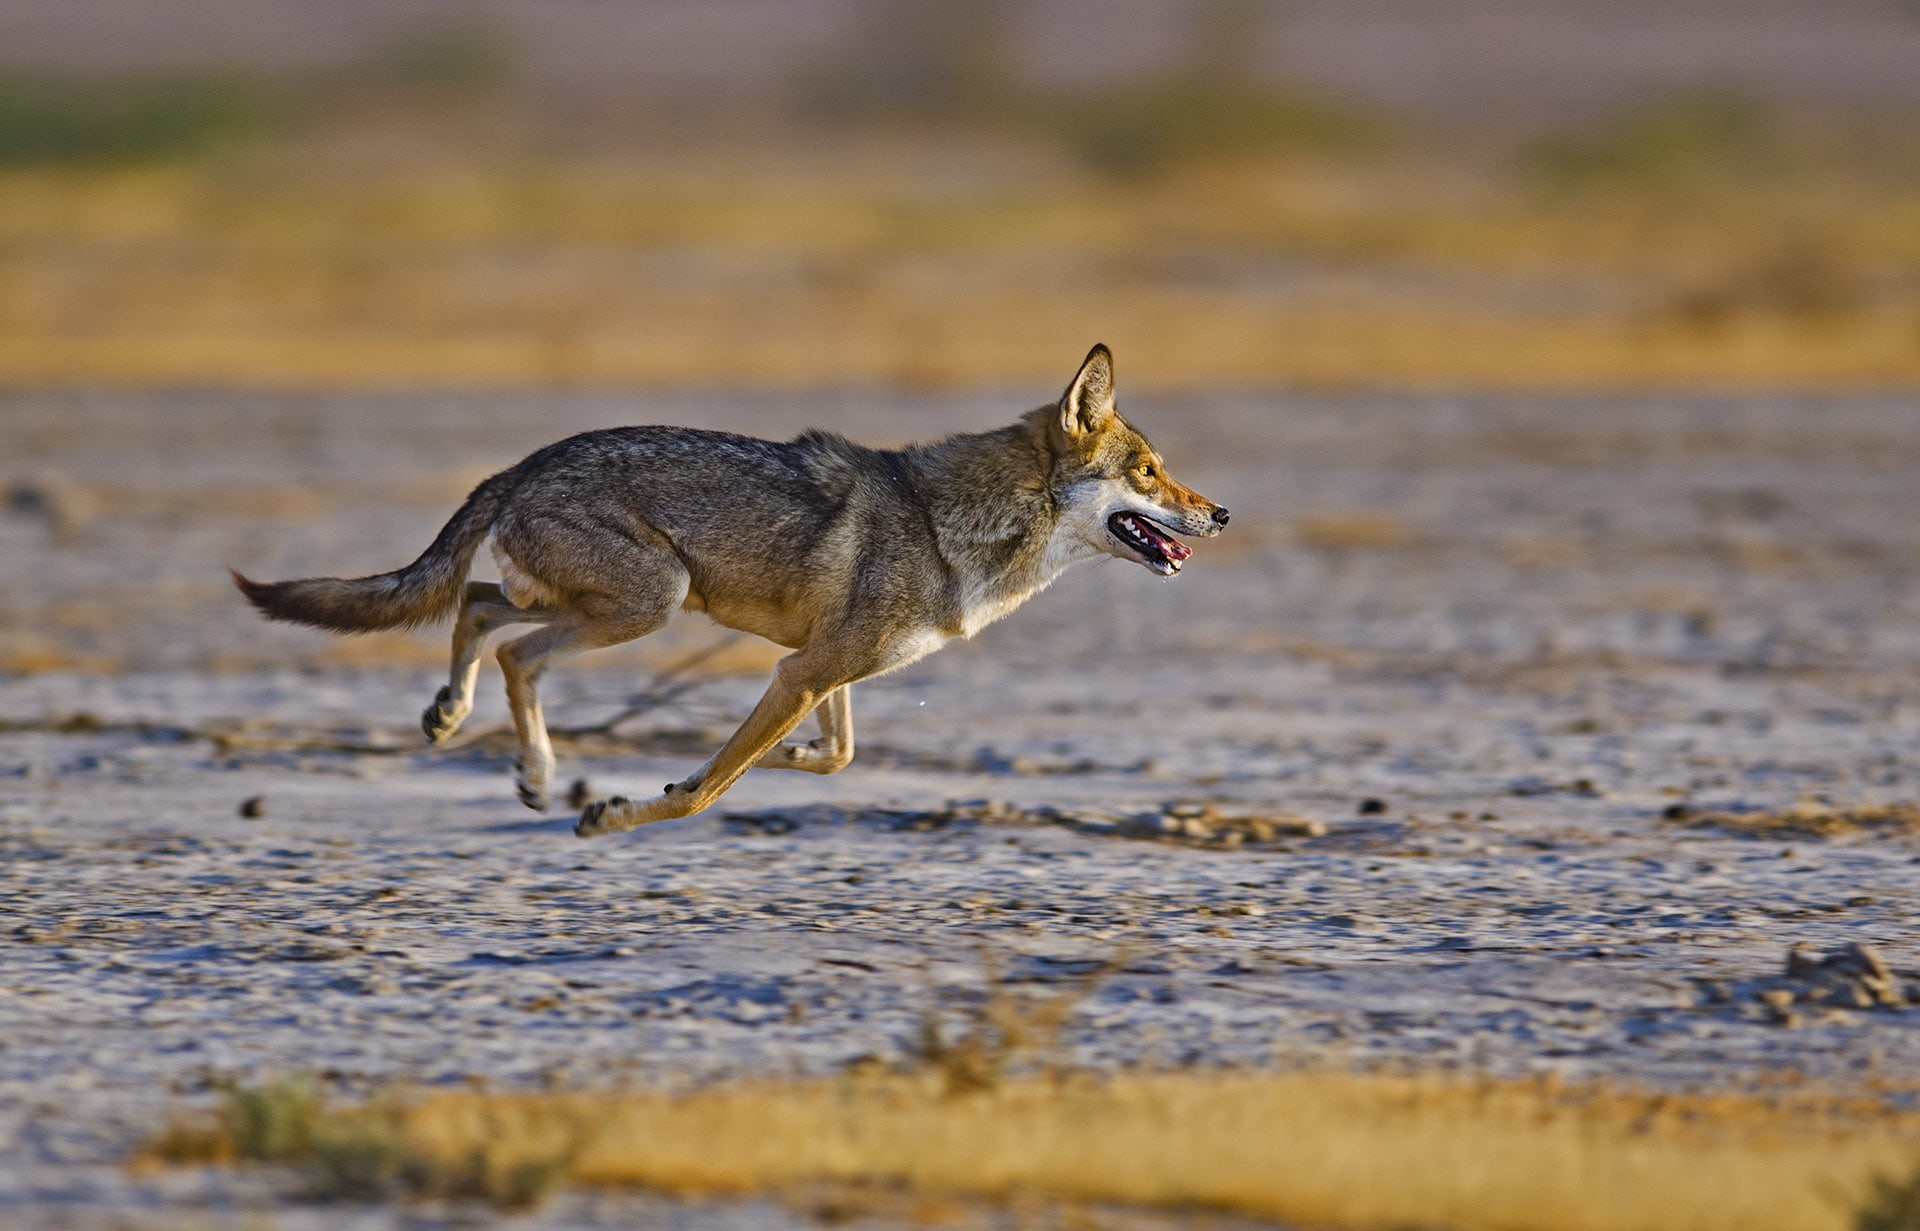 The Indian wolf is a pack animal that hunts over large range areas. Numbers of this endangered species are dwindling due to hunting and habitat destruction.